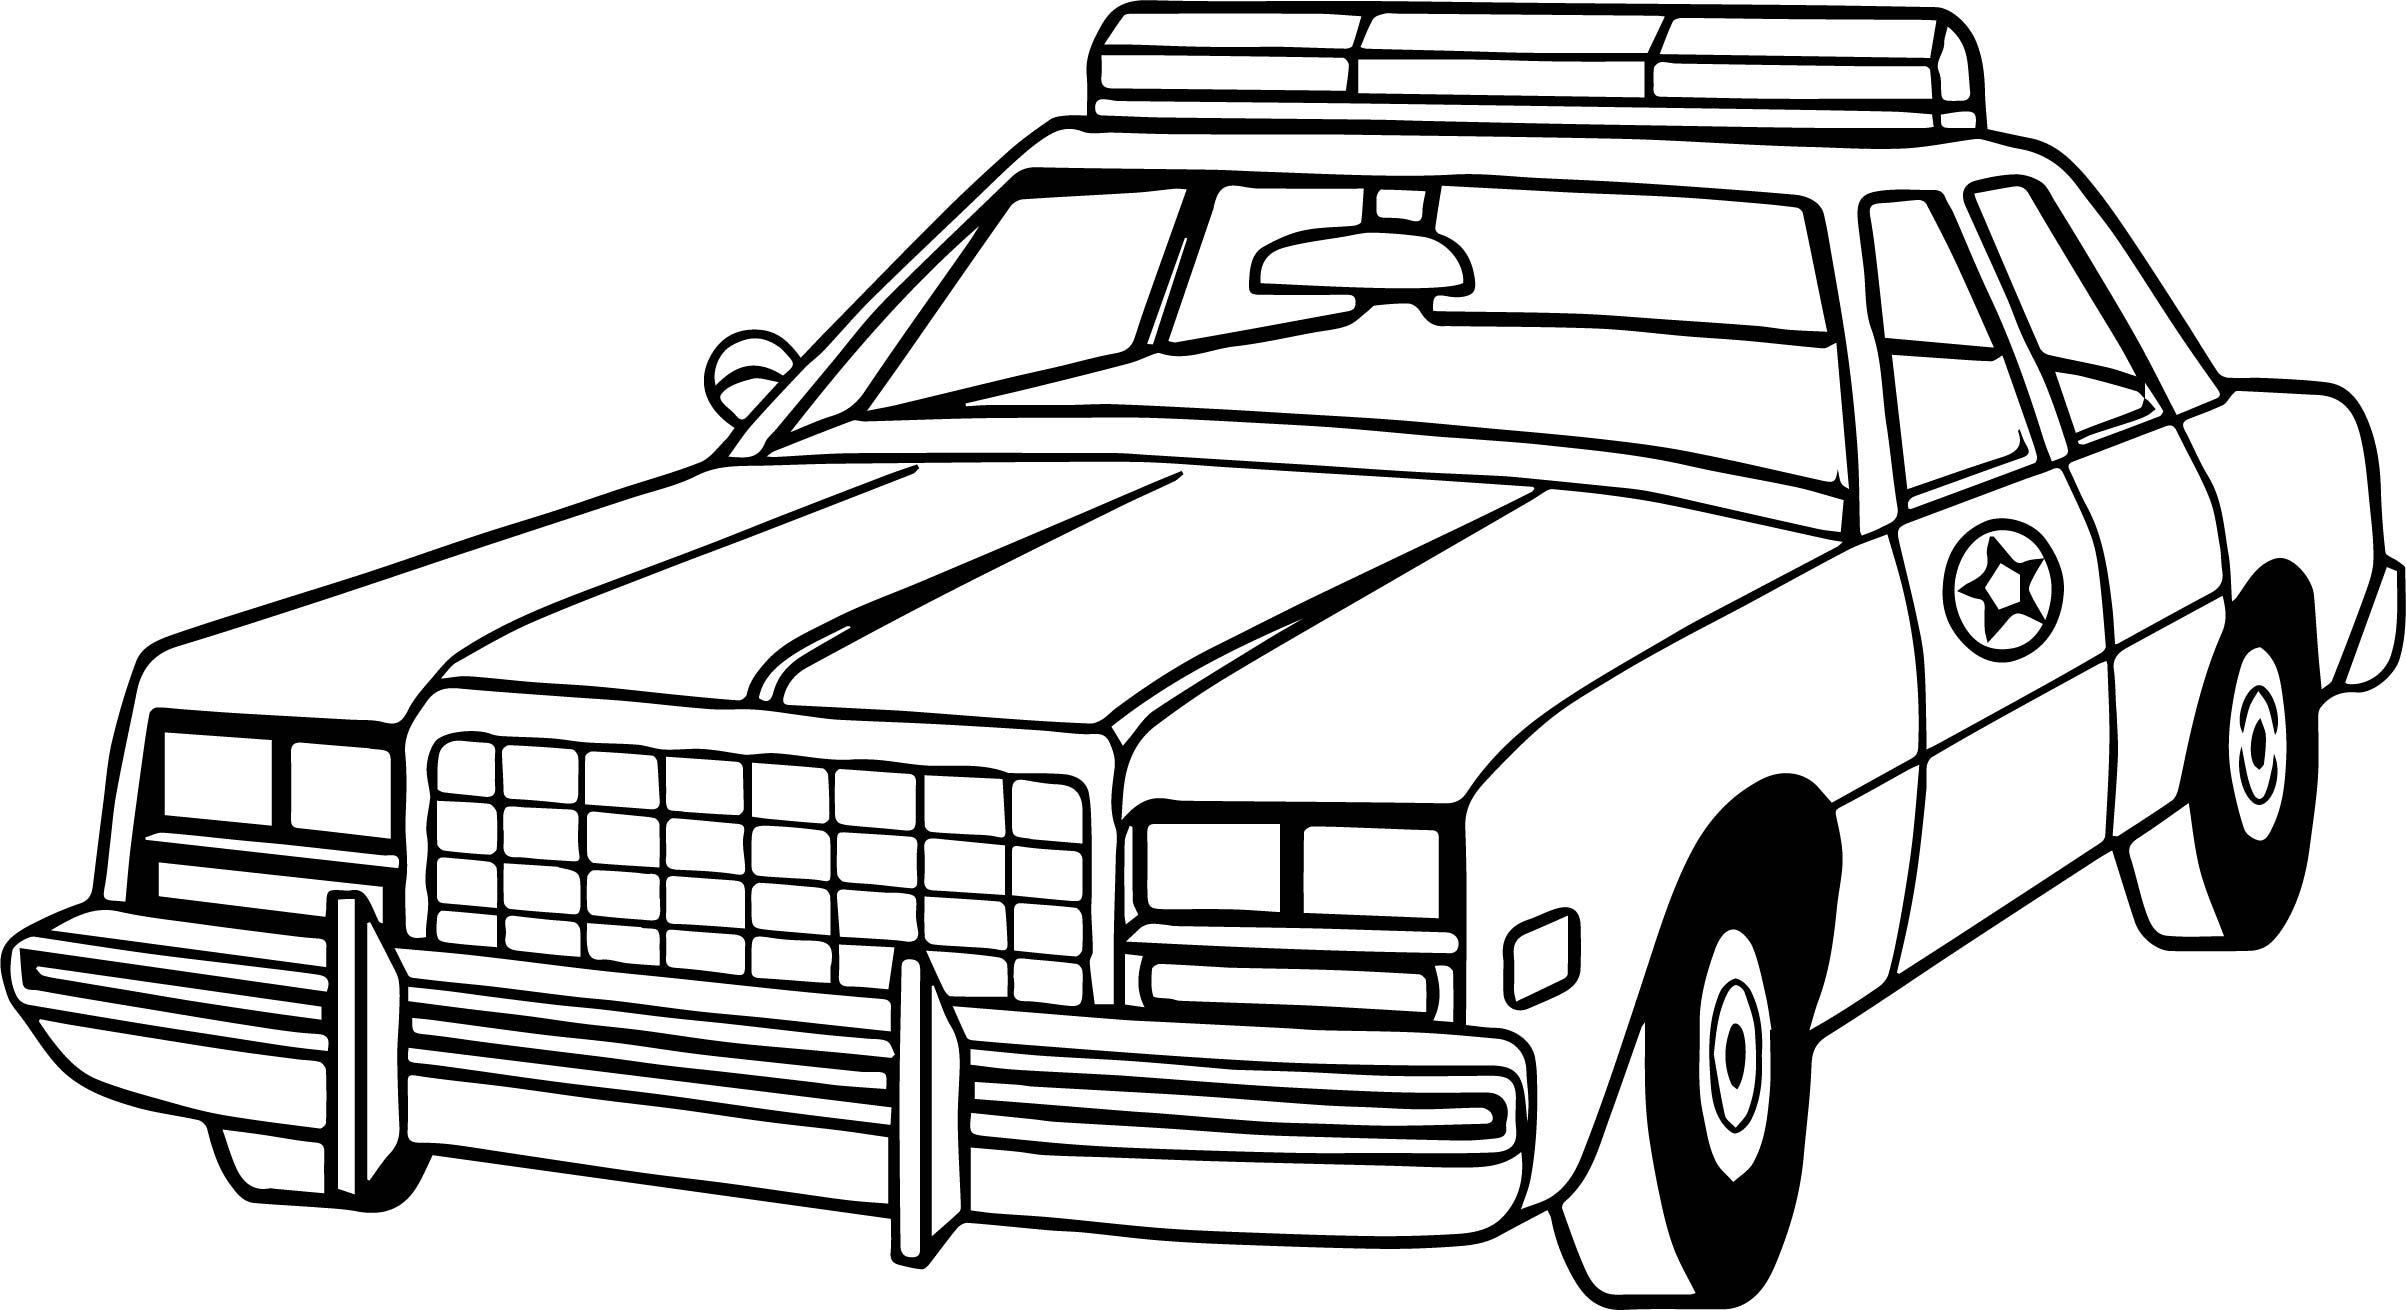 - Fine Police Car Coloring Pages Toddlers That You Must Know, You?re